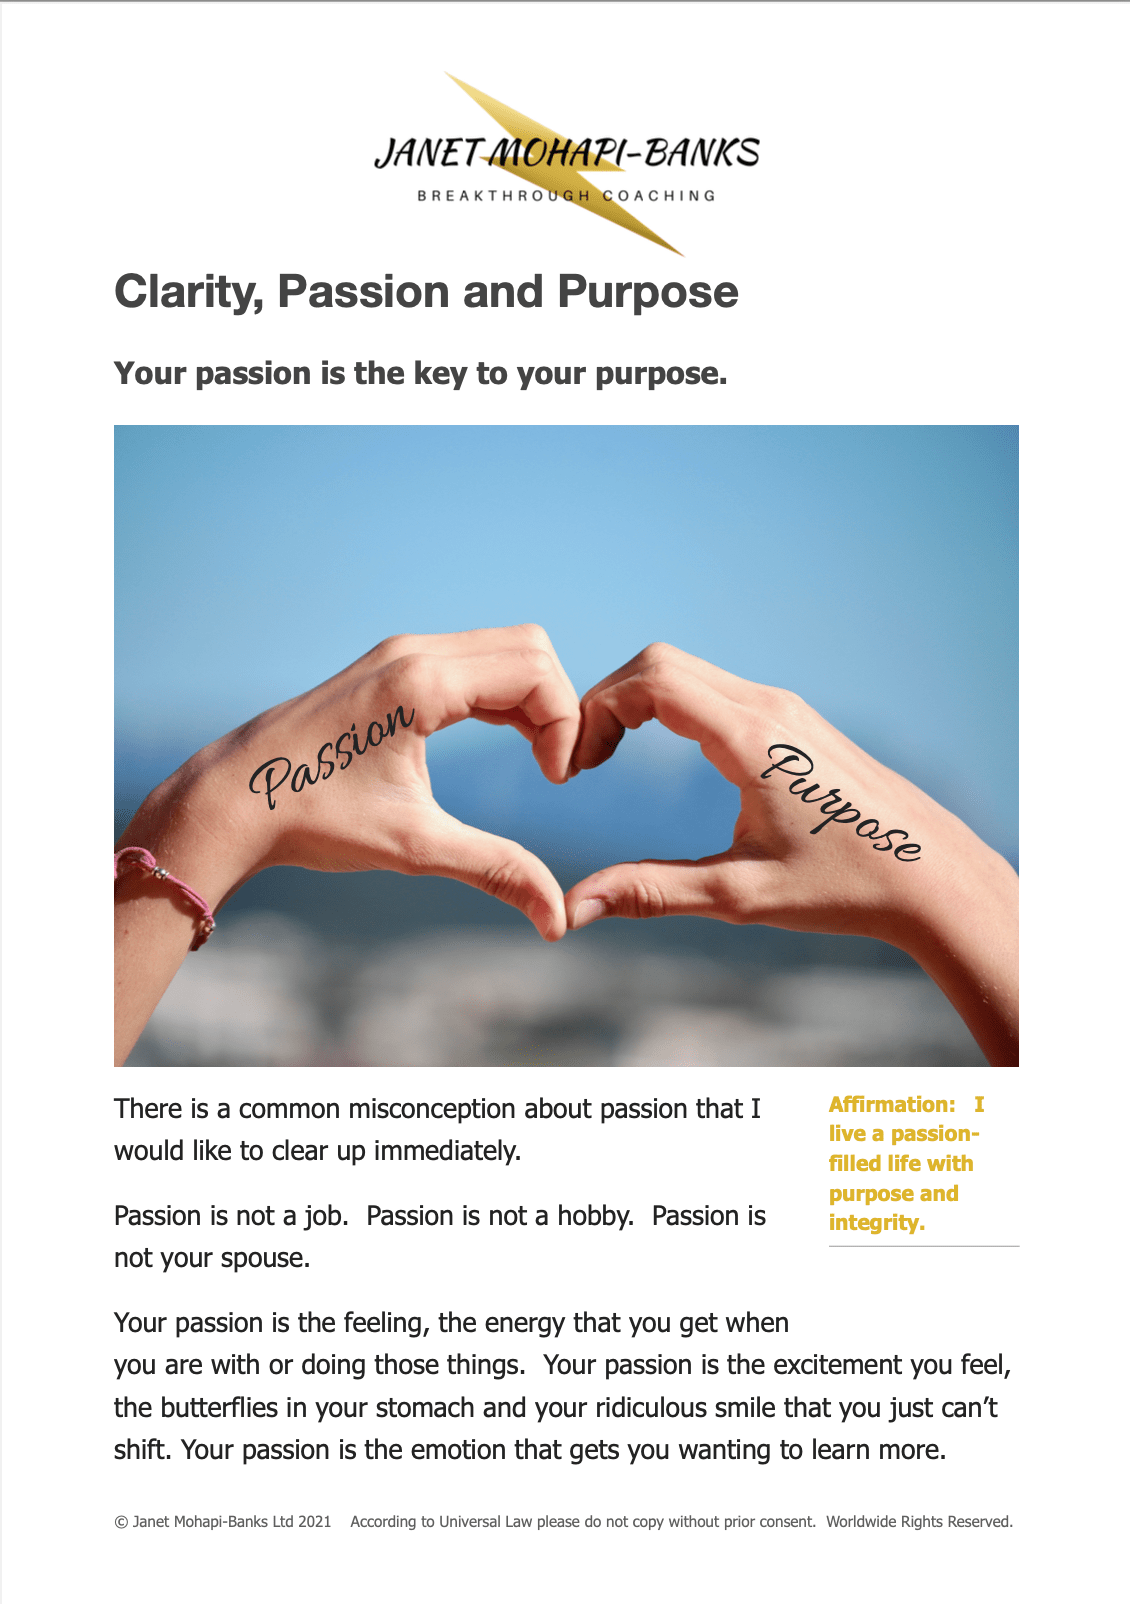 Clarity, Passion, and Purpose